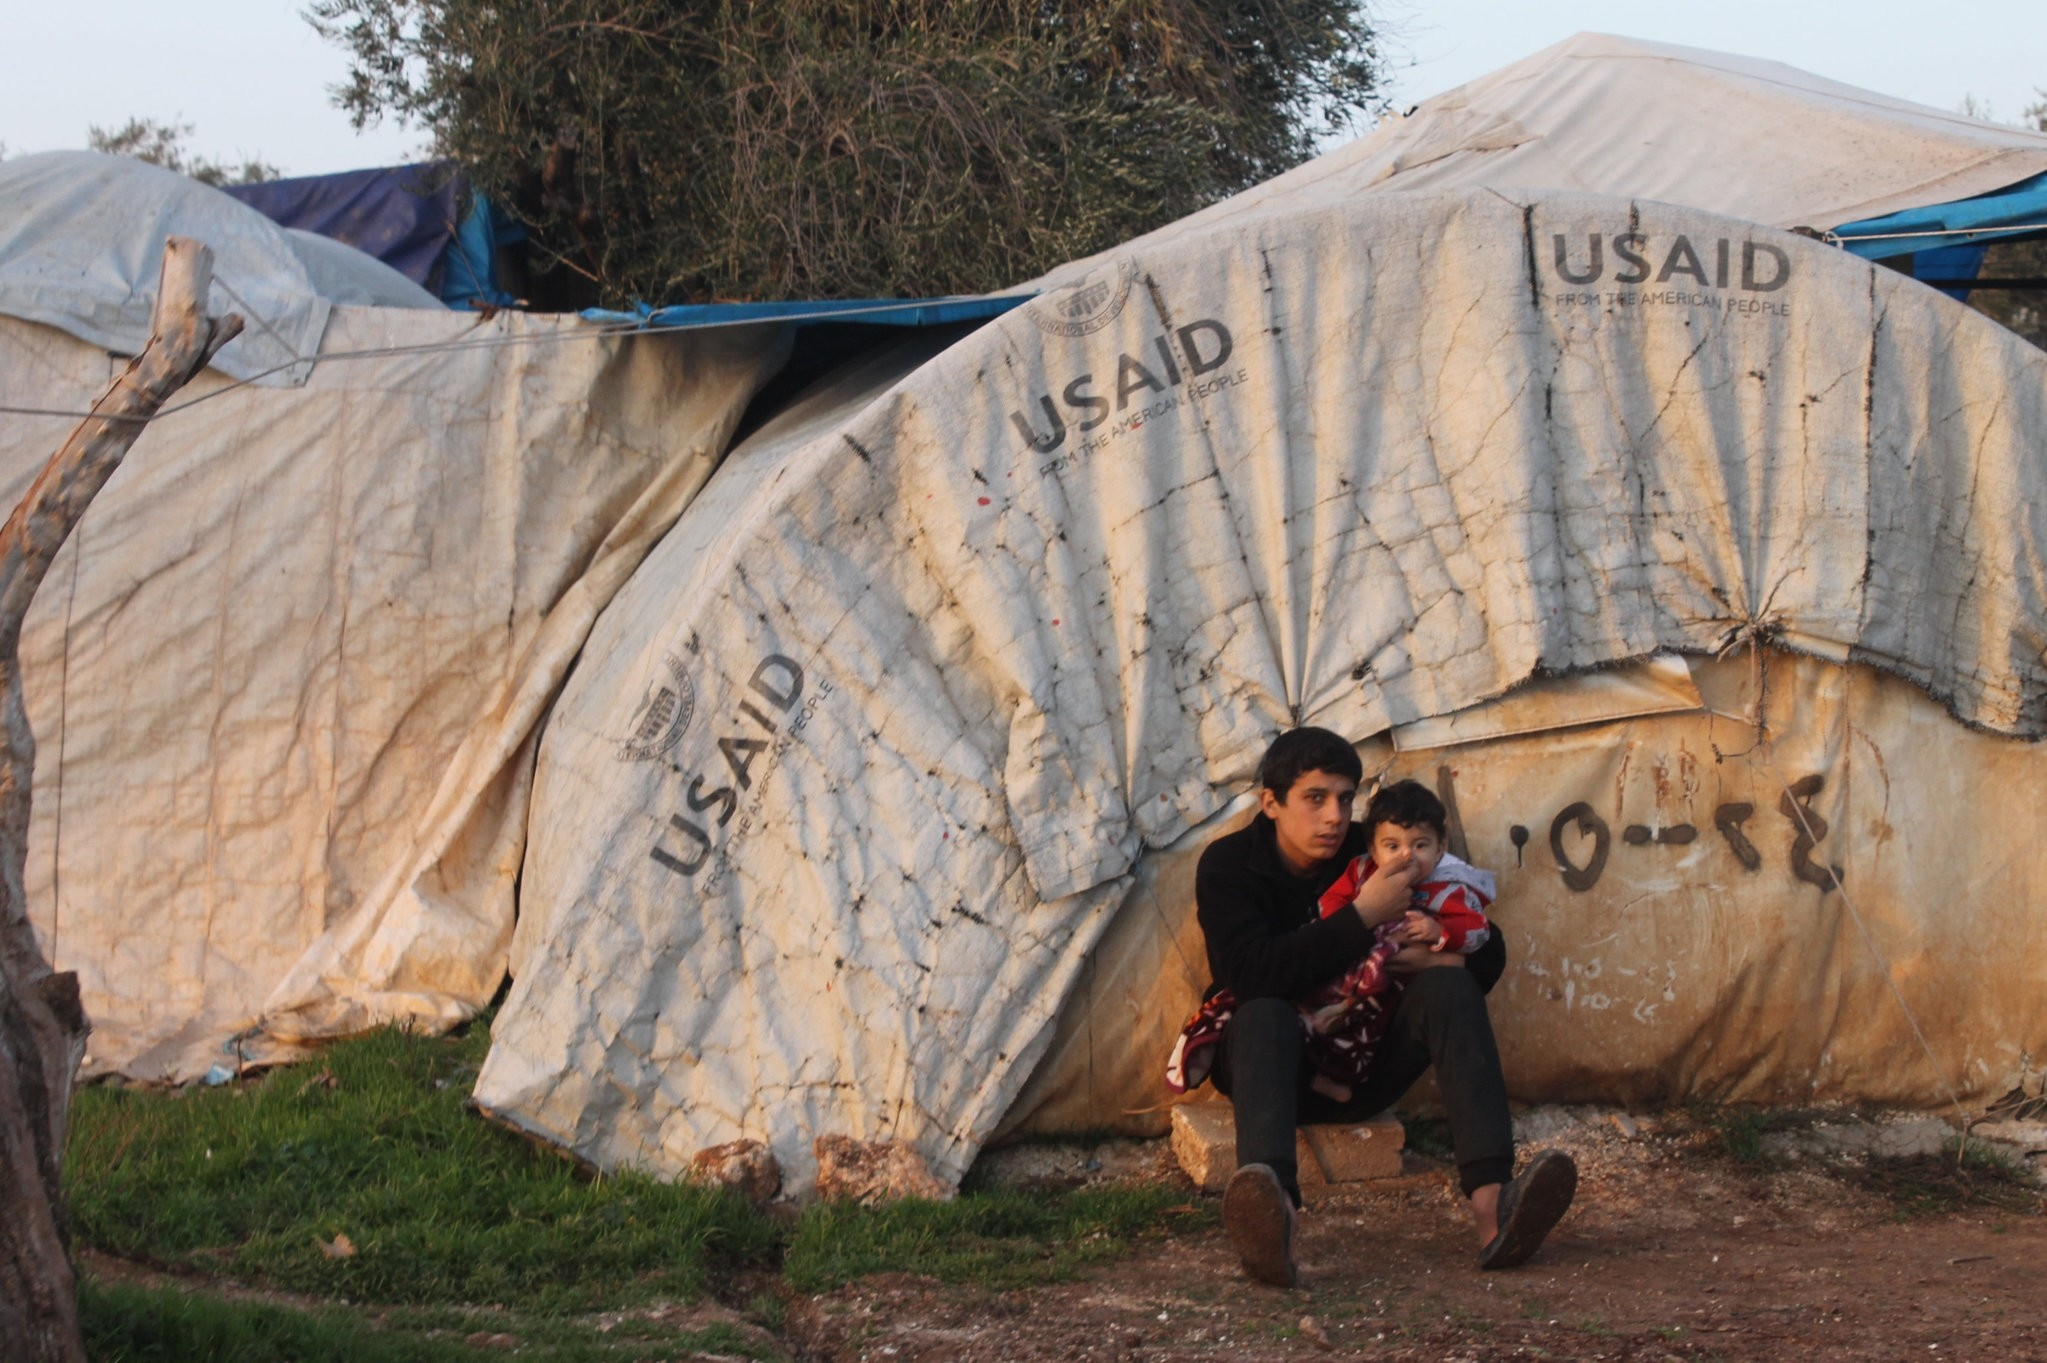 A Syrian teenager hugs his brother in front of their tent in the Atme Refugee Camp. A few days ago, a rocket fired by YPG terrorists hit the camp where Syrian refugees took refugee after fleeing terrorist attacks by in their hometowns.